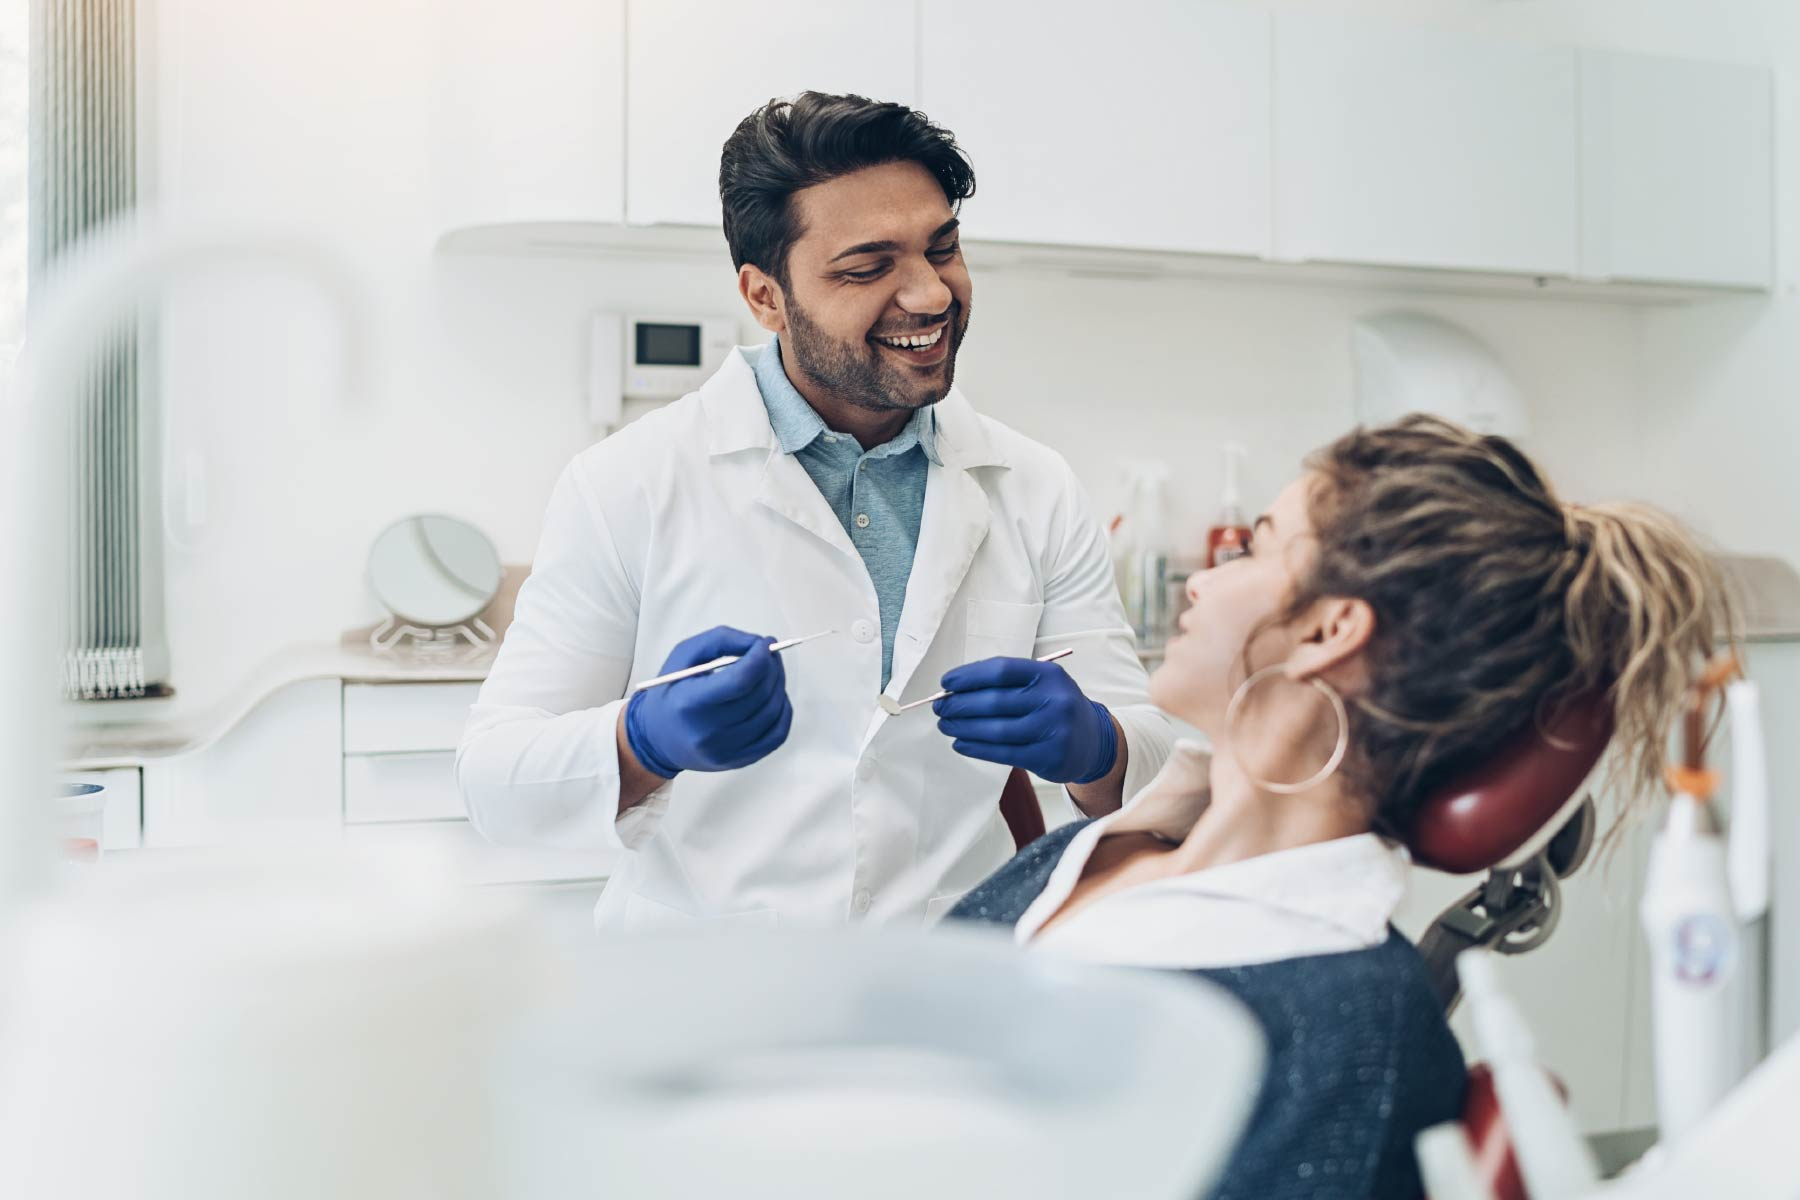 Dentist talking to patient during check-up